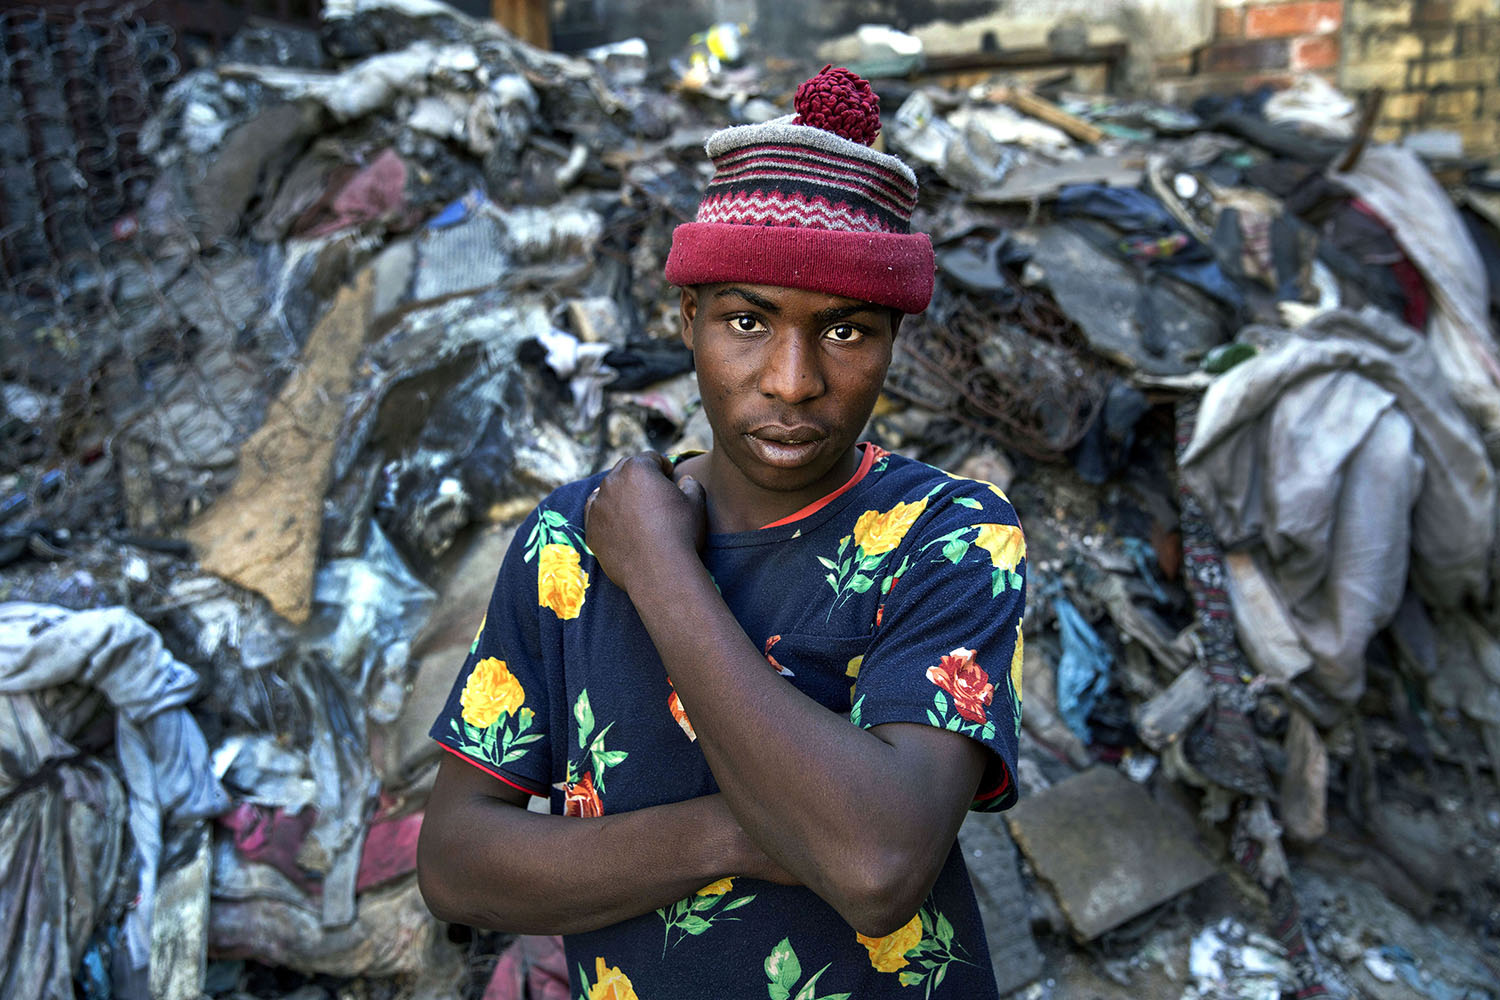 Pumulelo (age 25 ) a migrant from Zimbabwe stands in the piles of rubbish at a derelict building he has made his home, July 19, 2015.